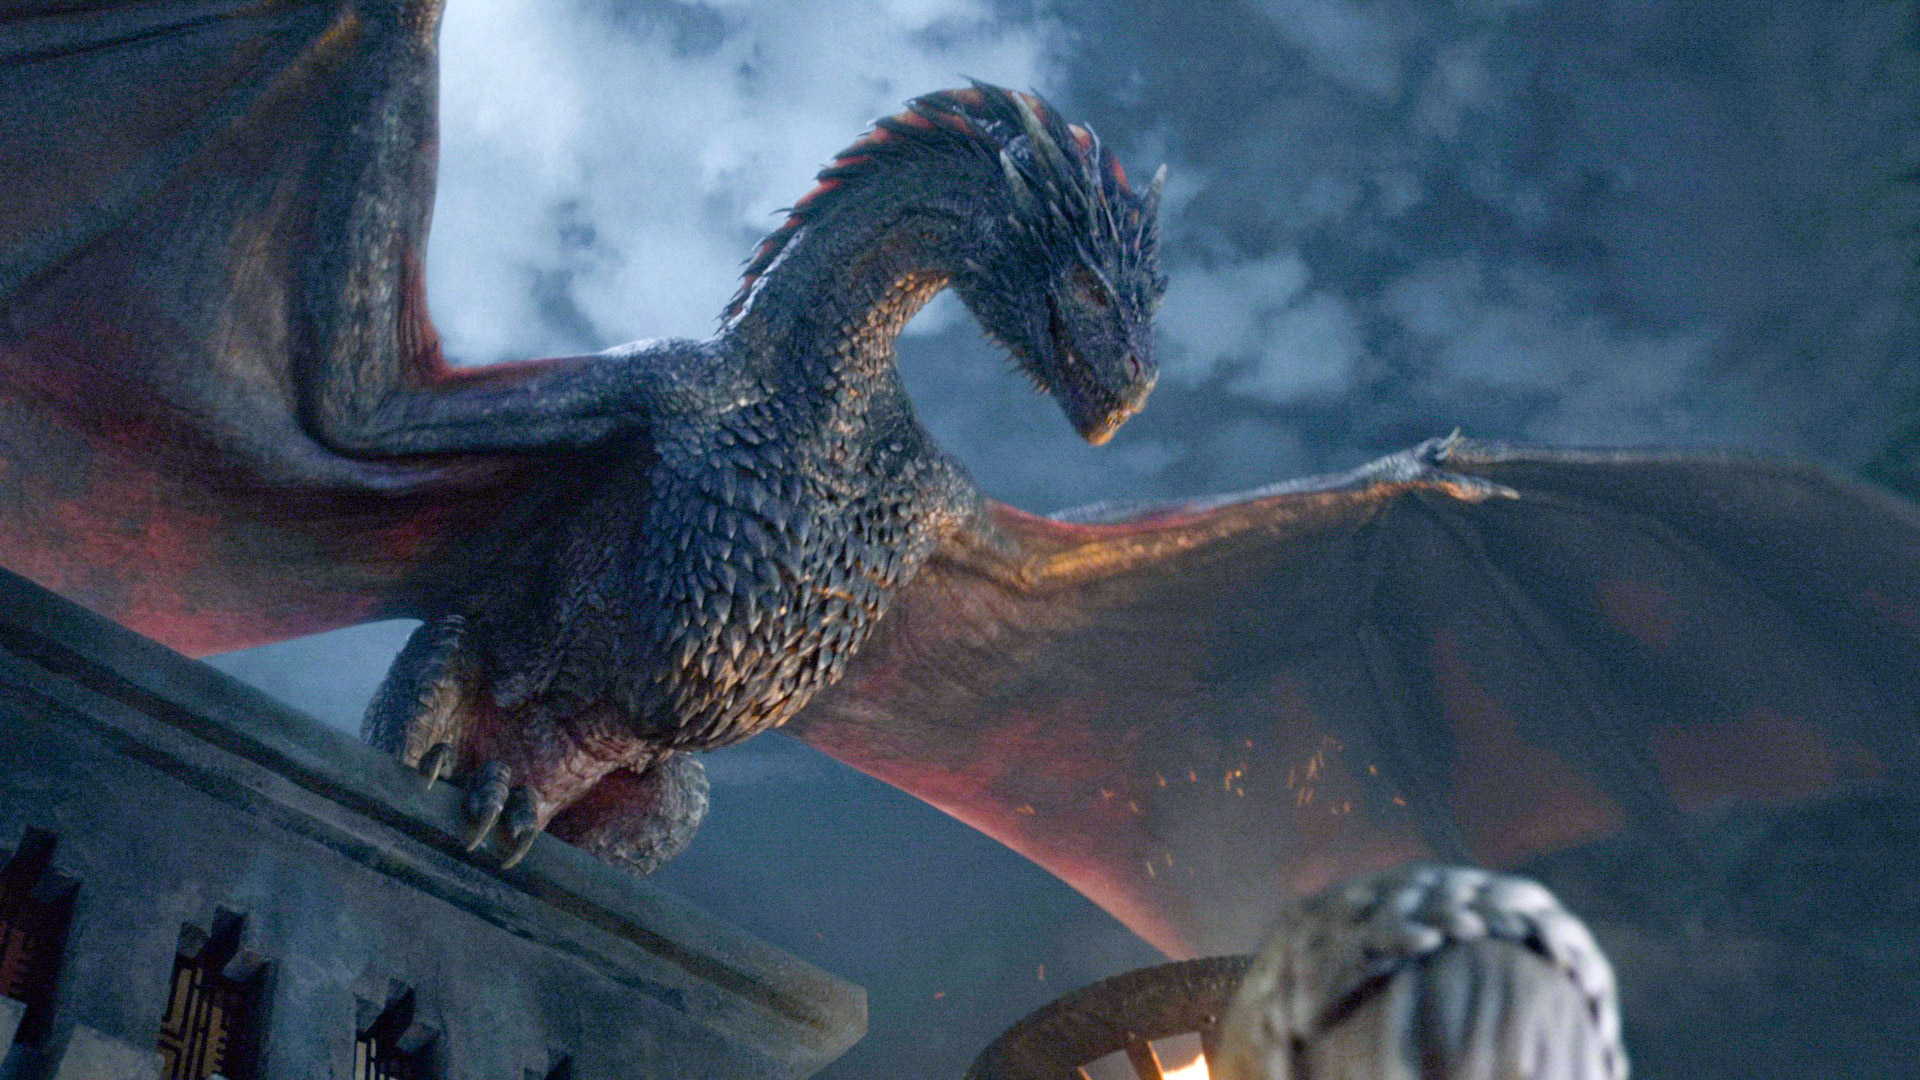 Game of Thrones Dragon Wallpaper   DreamLoveWallpapers 1920x1080